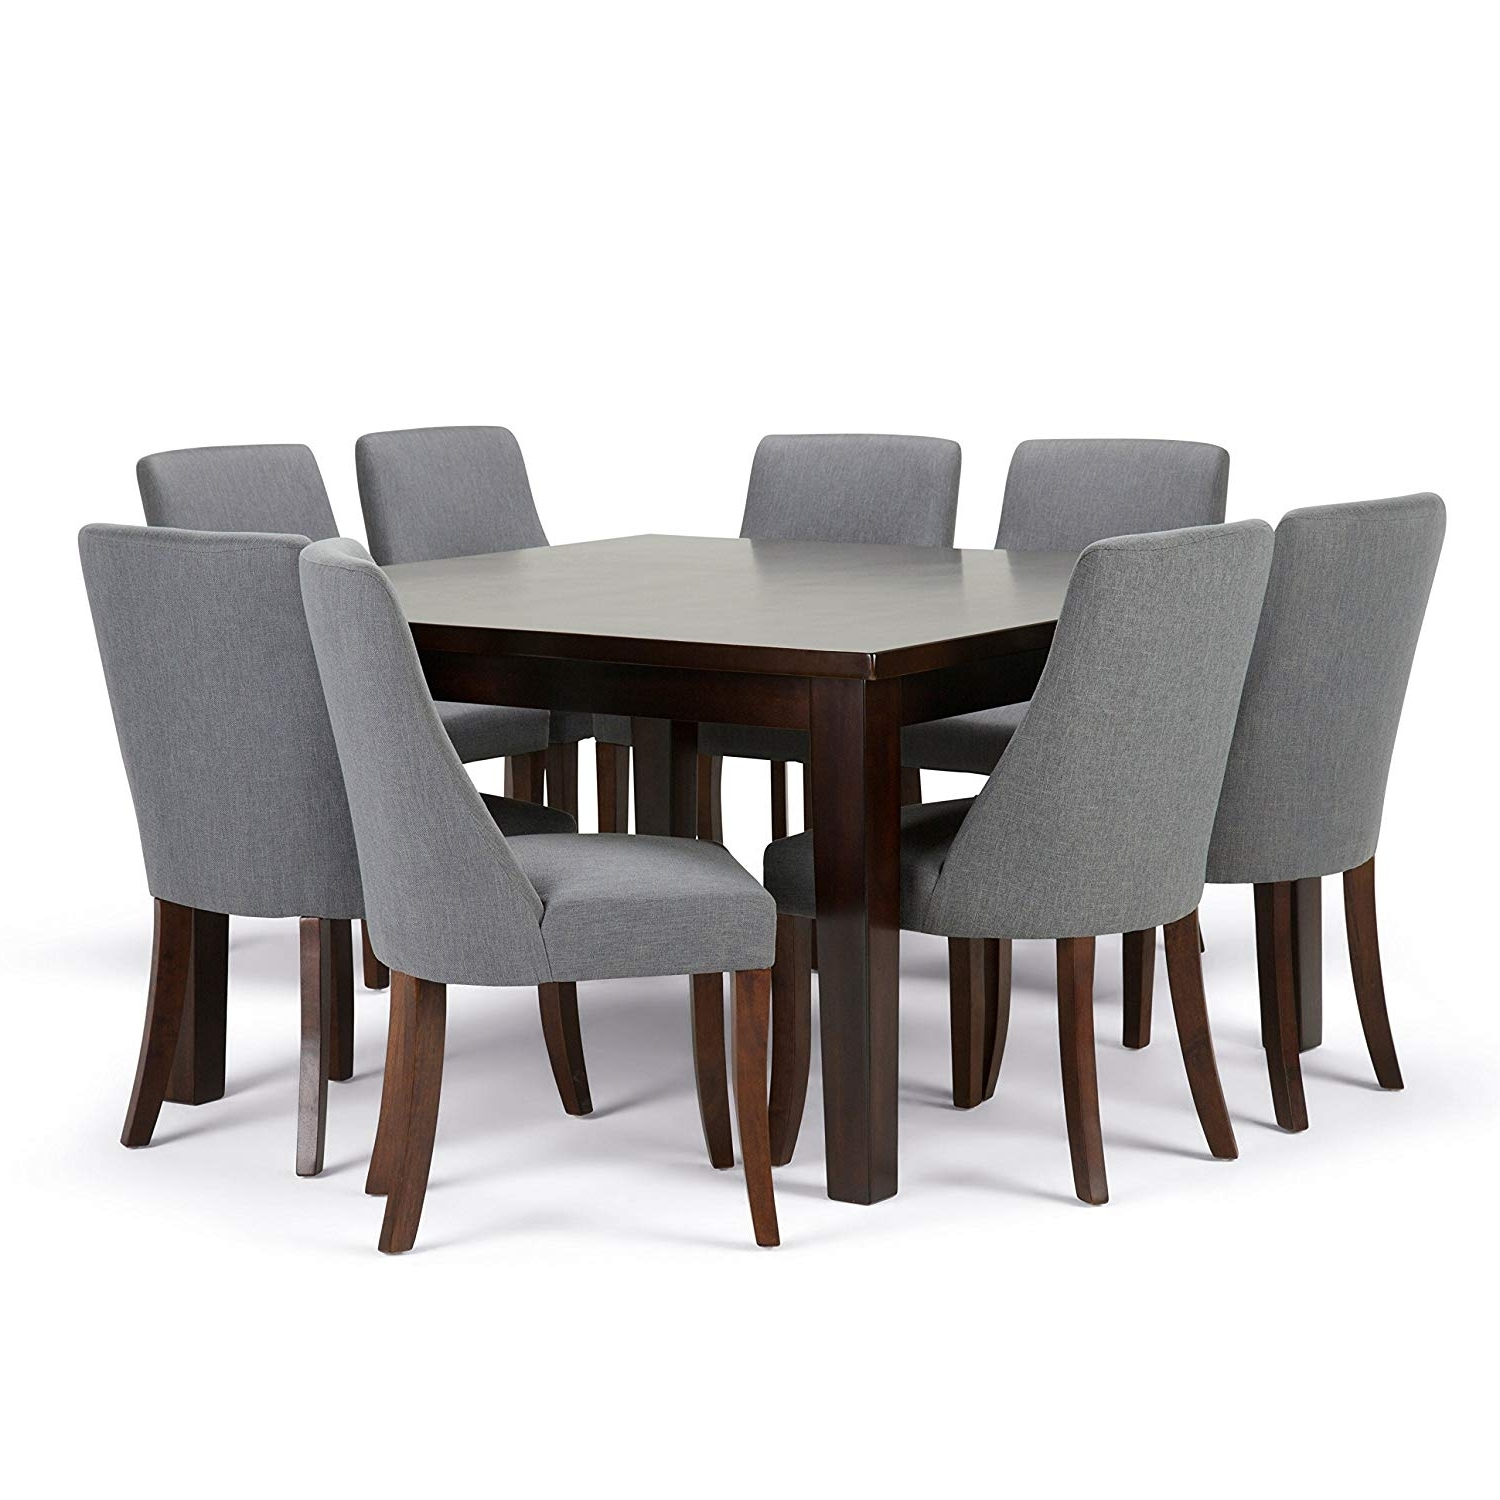 Newest Amazon: Simpli Home Walden 9 Piece Dining Set, Slate Grey Within Walden Extension Dining Tables (Gallery 9 of 25)